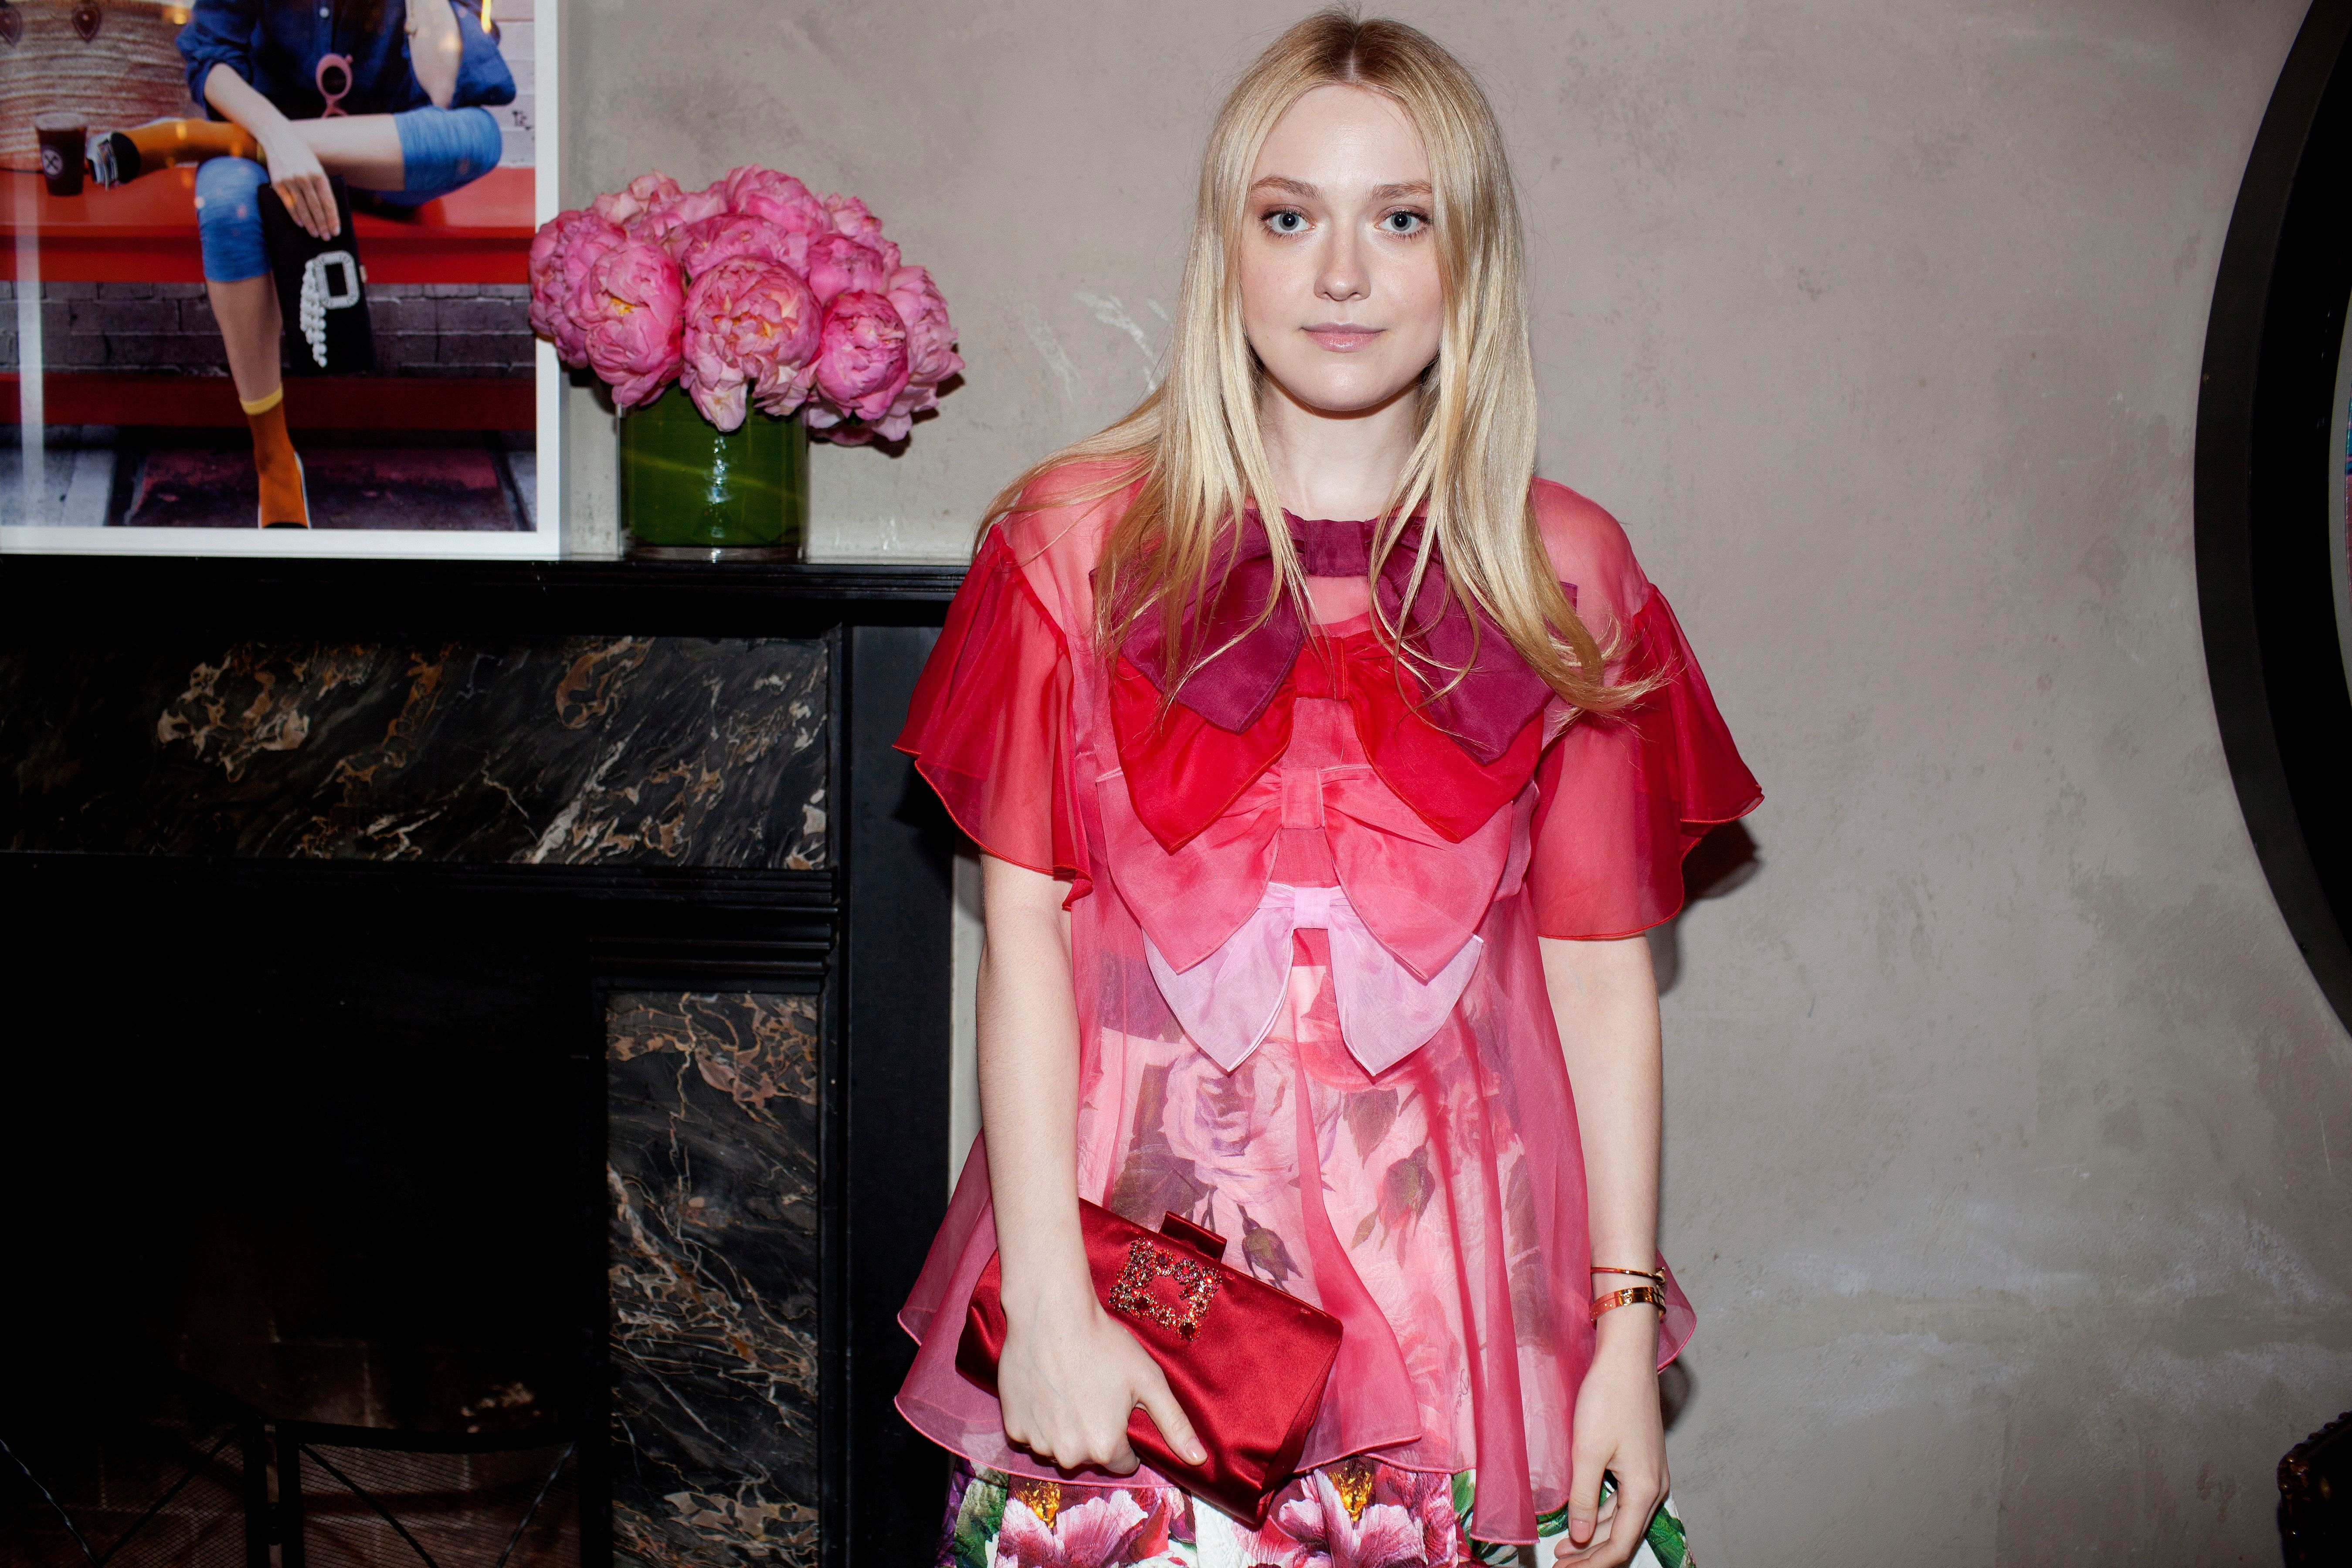 Dakota Fanning attends the Roger Vivier '#LoveVivier' Book Launch in New York City on May 31, 2018.